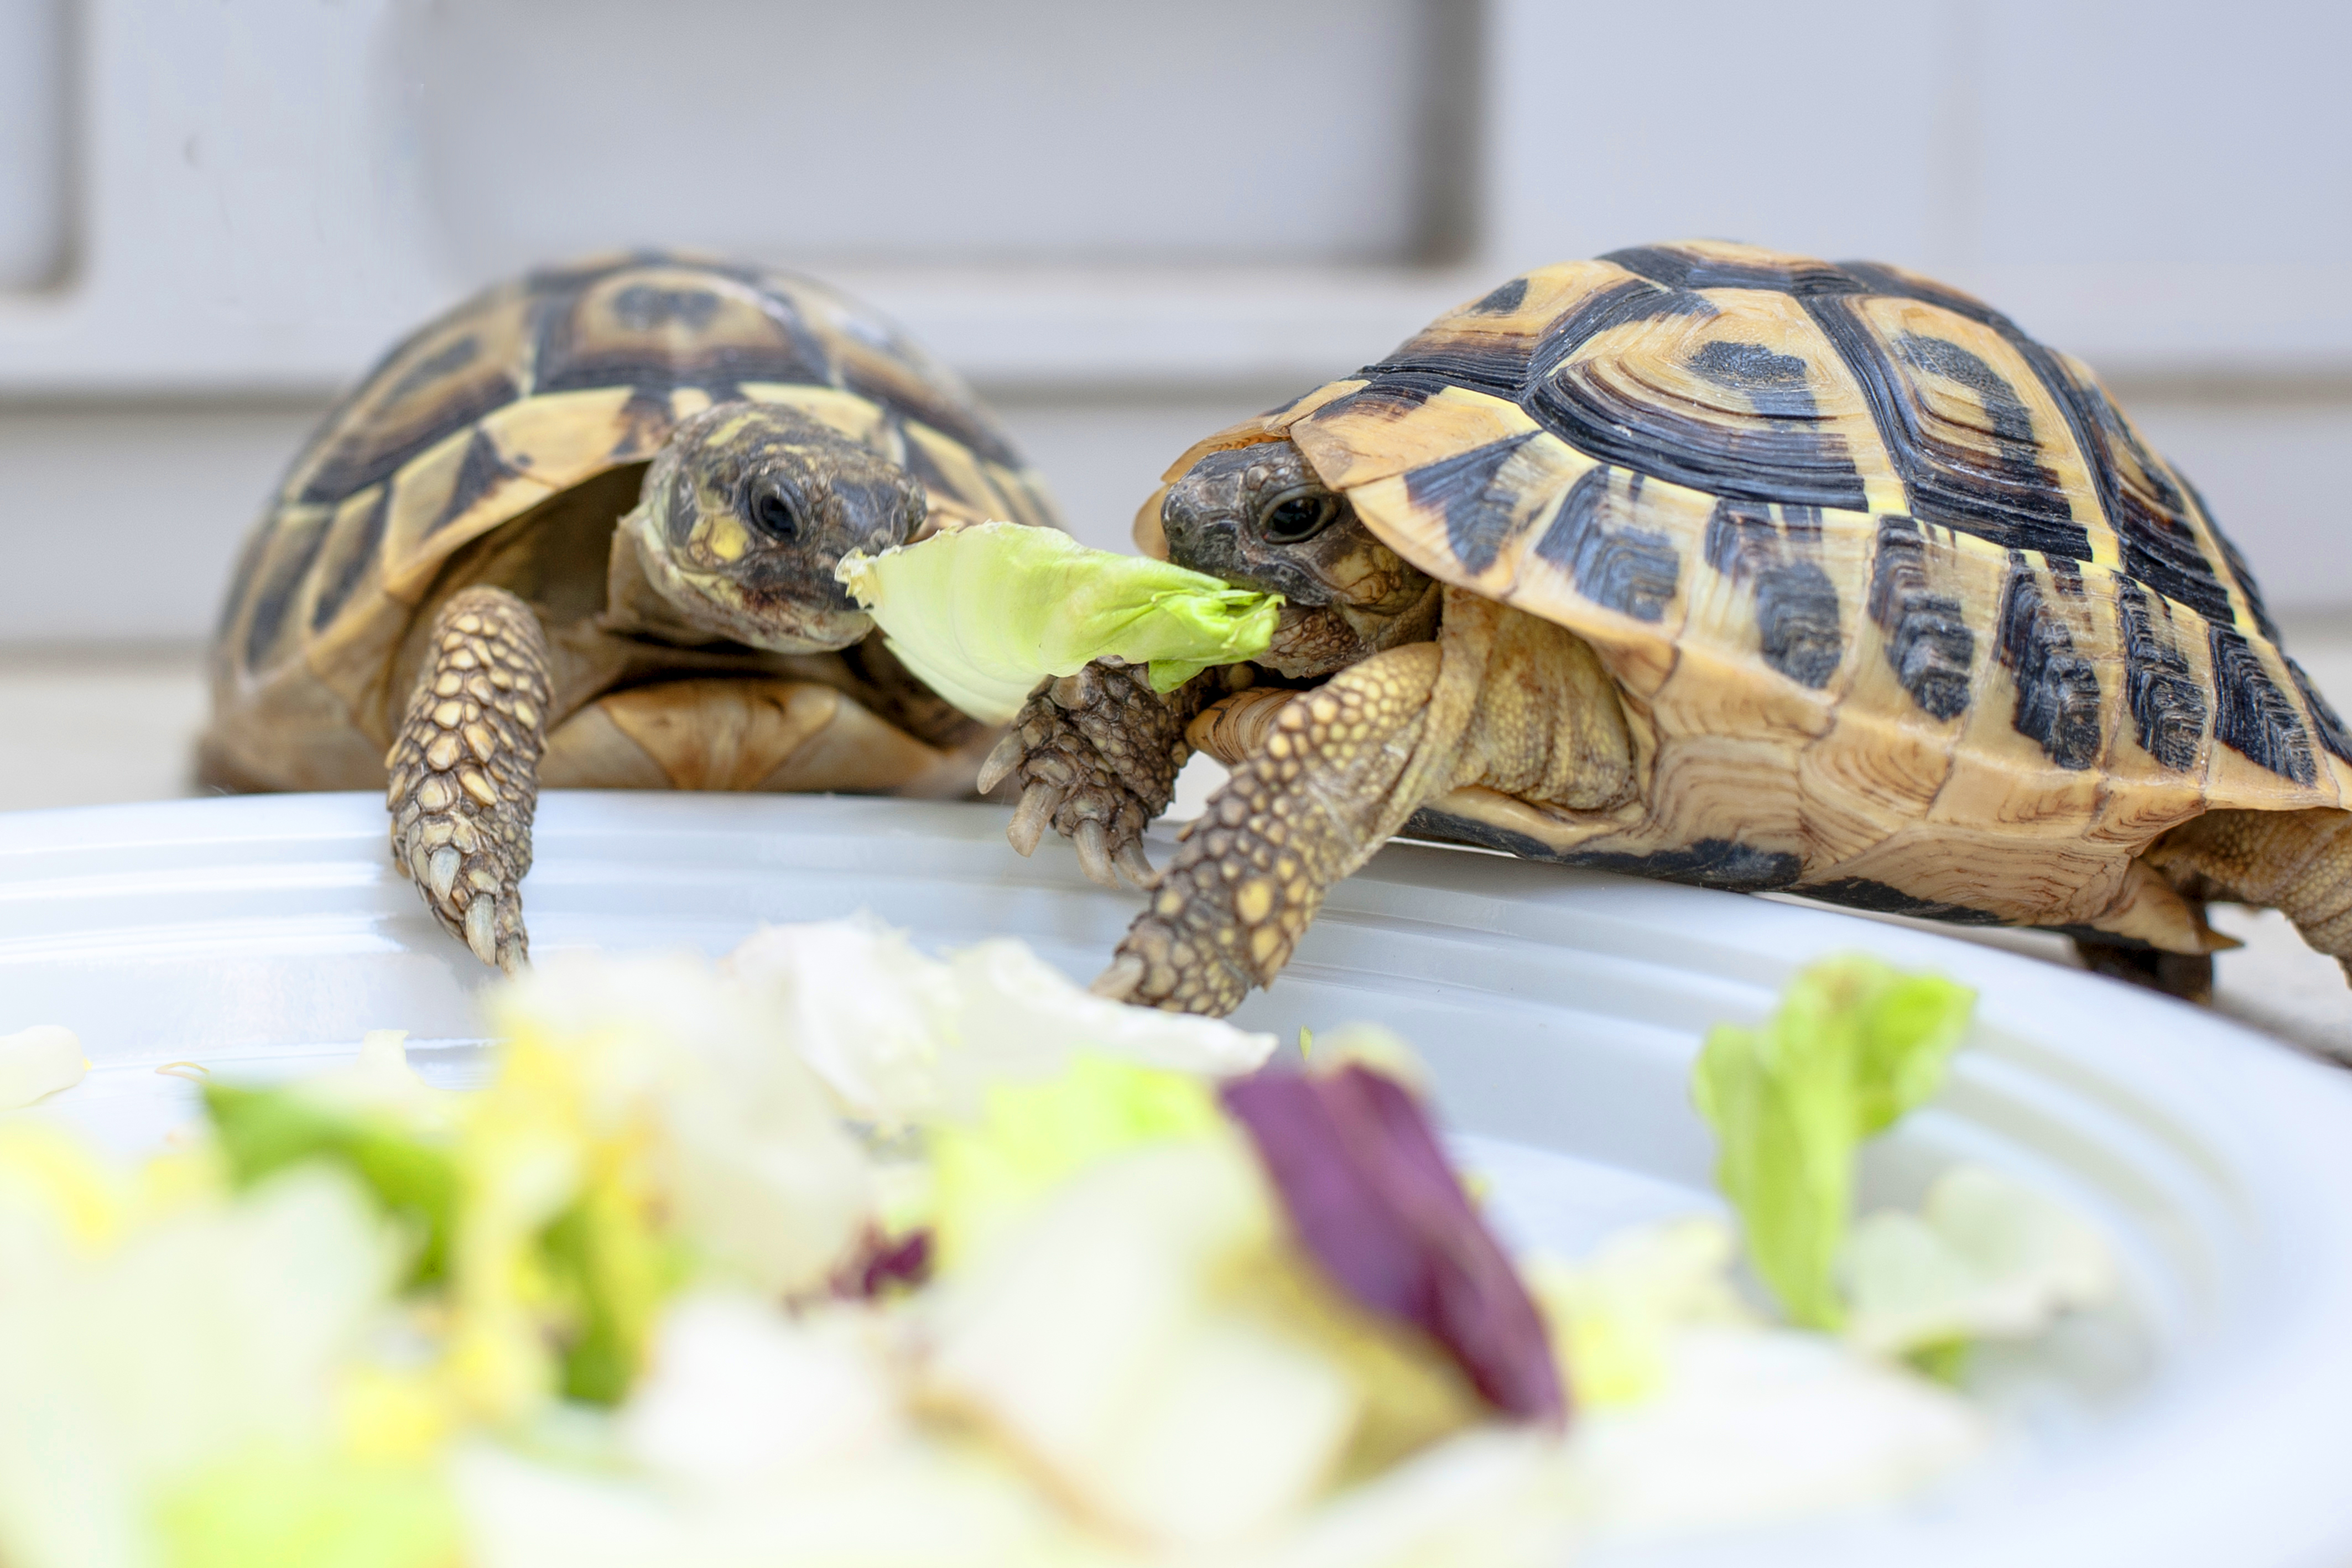 Two turtles share a leaf of lettuce over a plate.